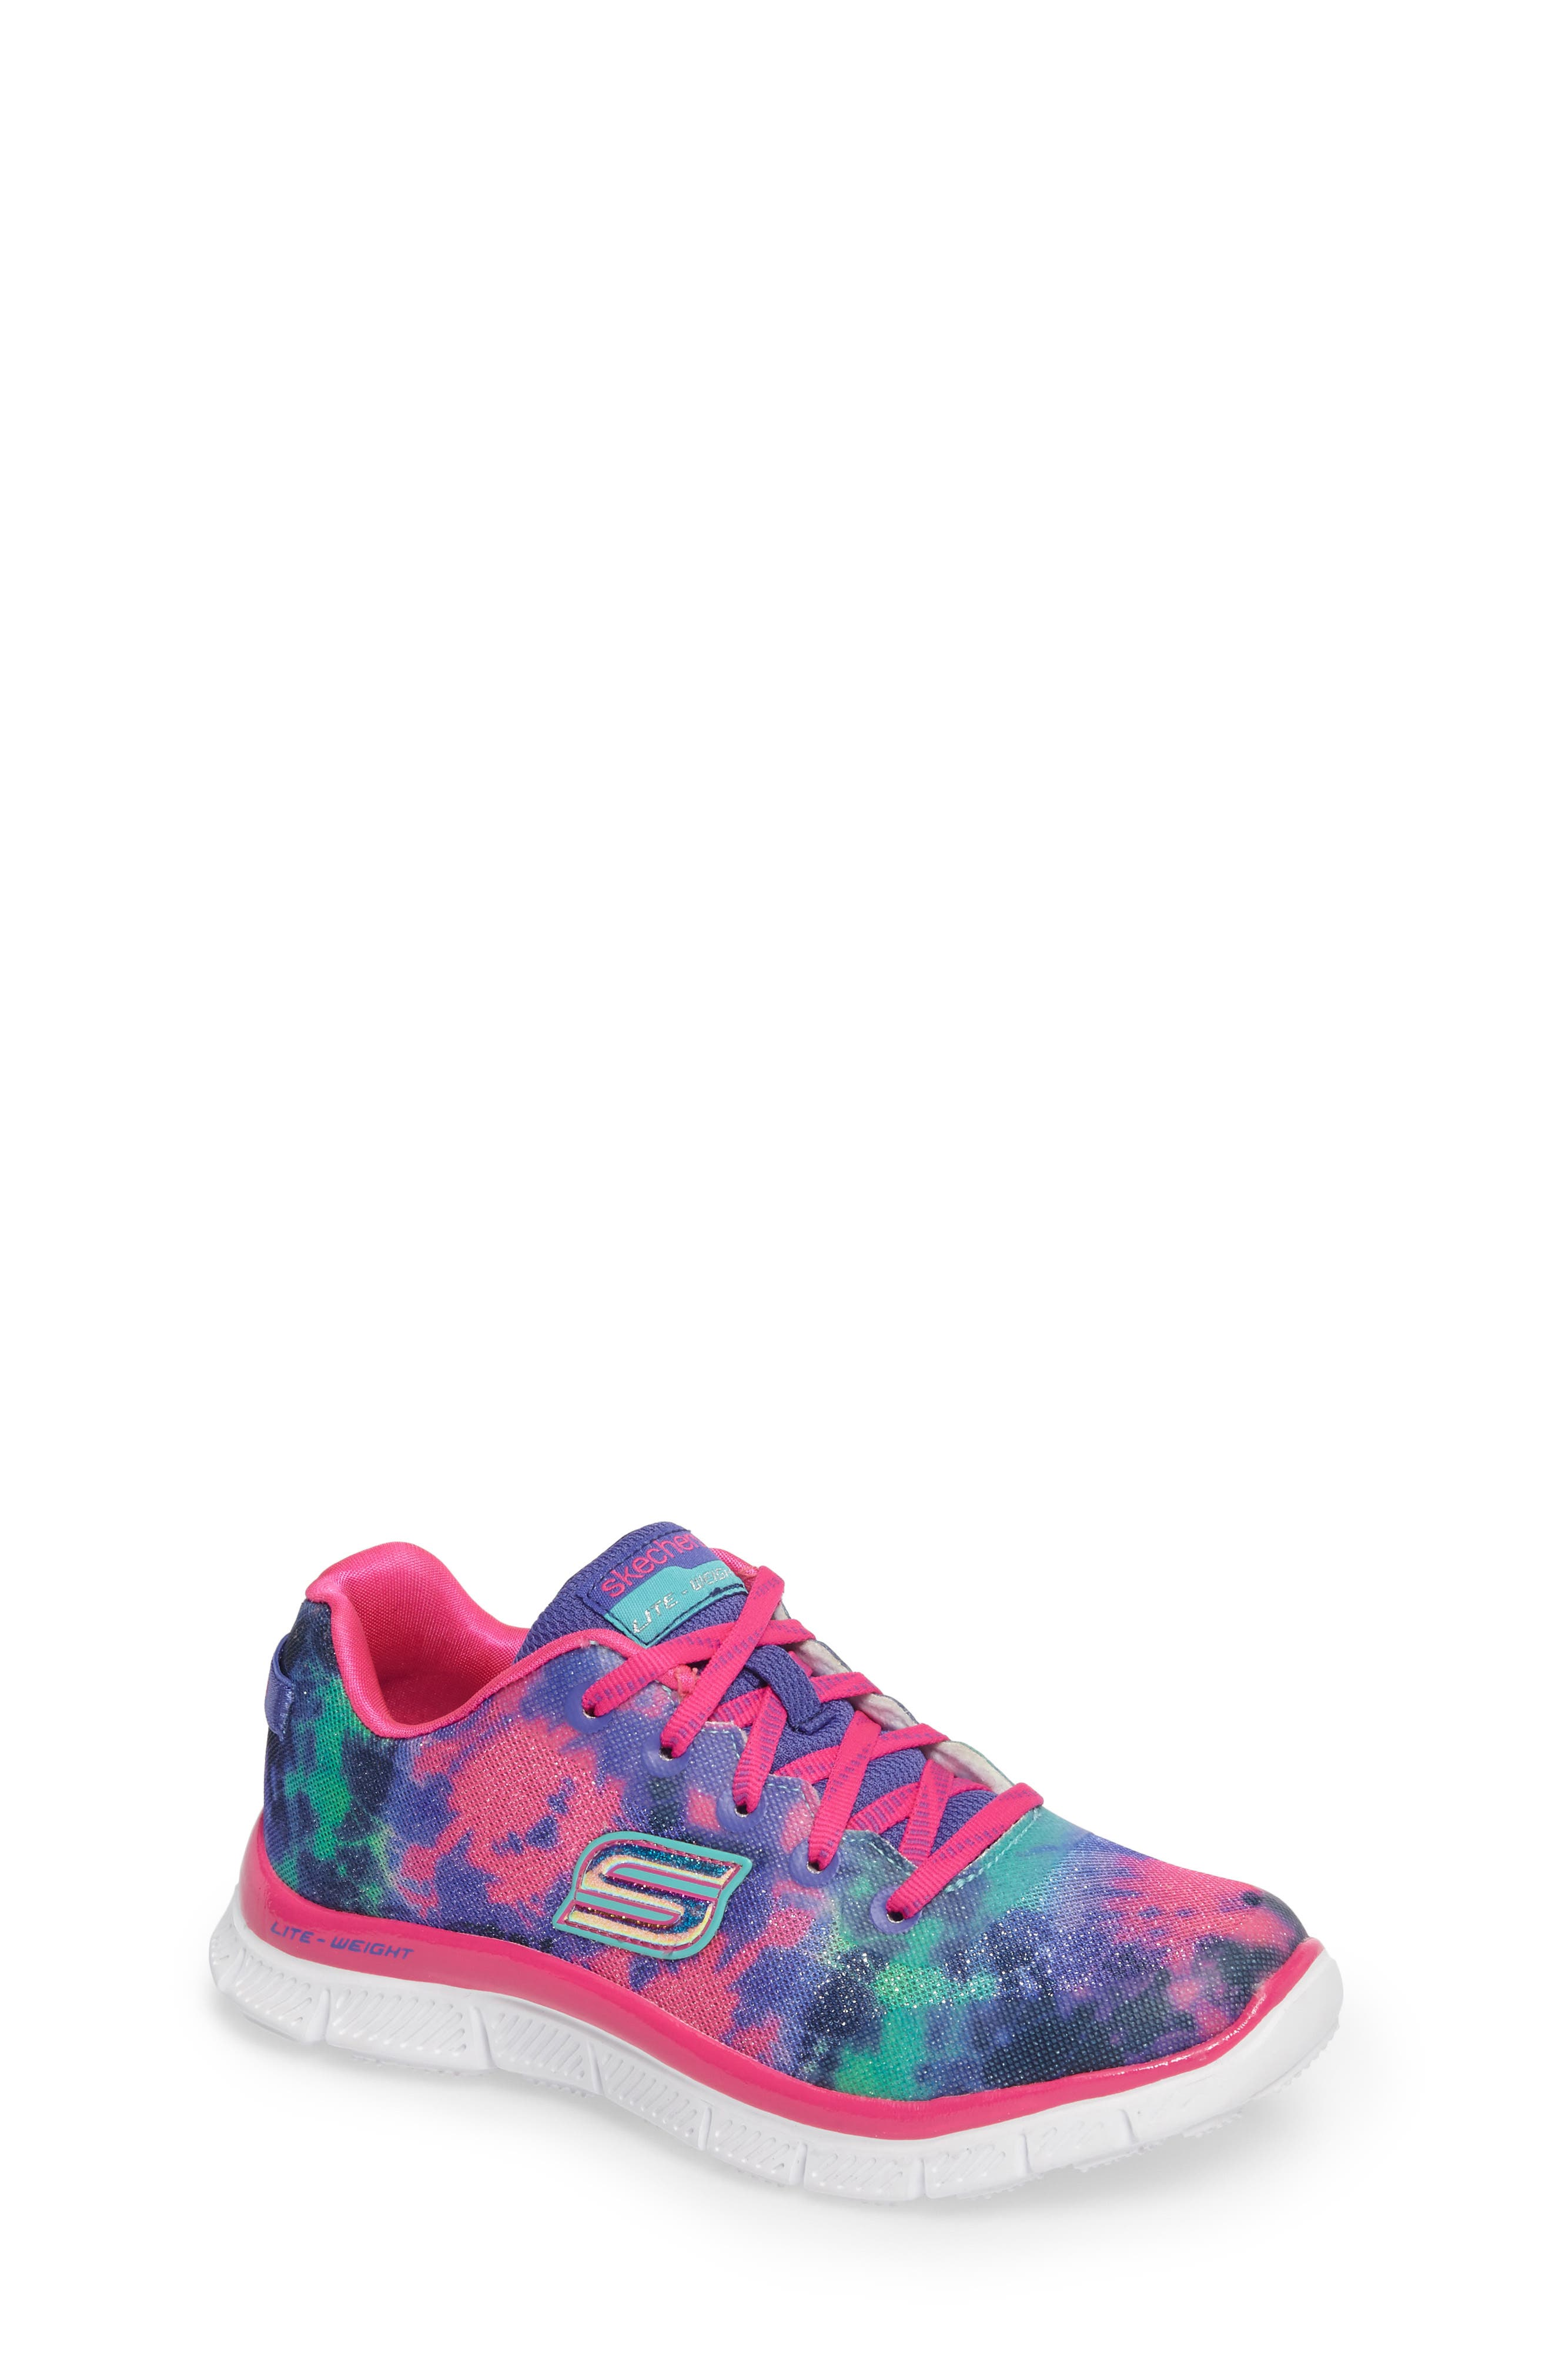 Skech Appeal Groove Thang Sneaker,                             Main thumbnail 1, color,                             Neon Pink/ Multi